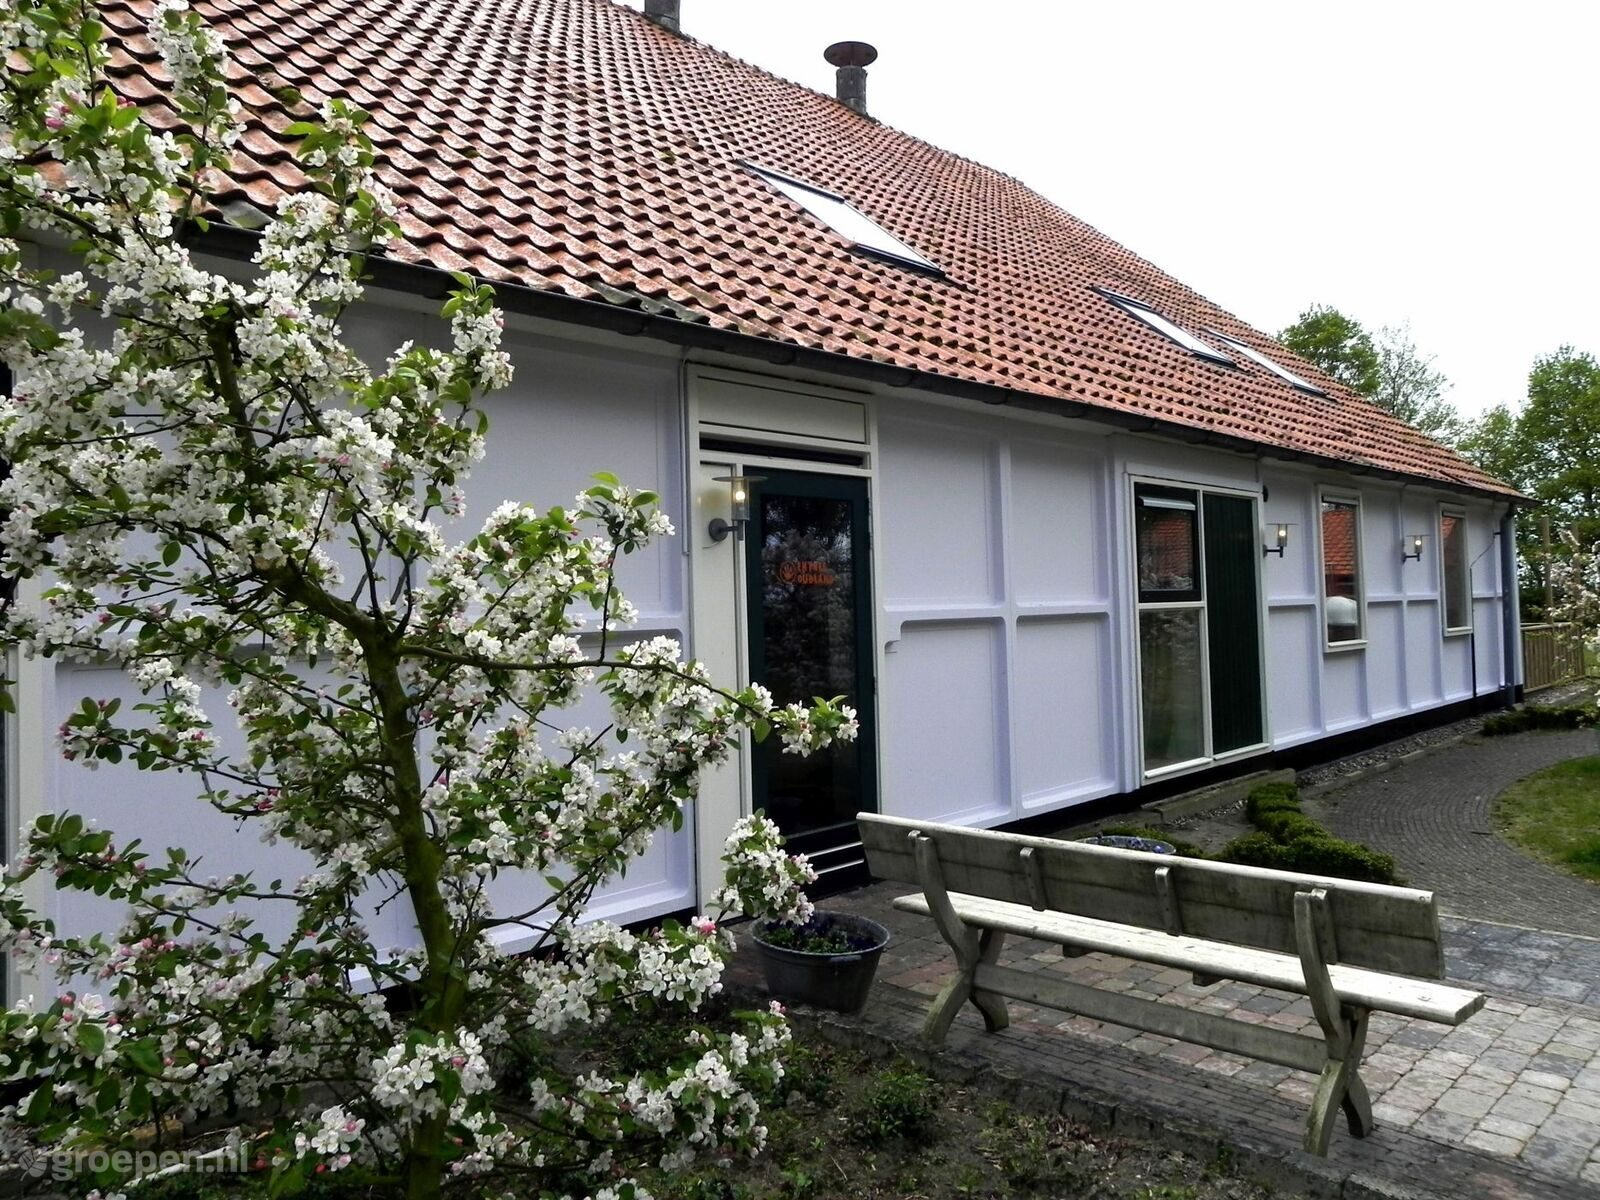 Group accommodation Blokzijl